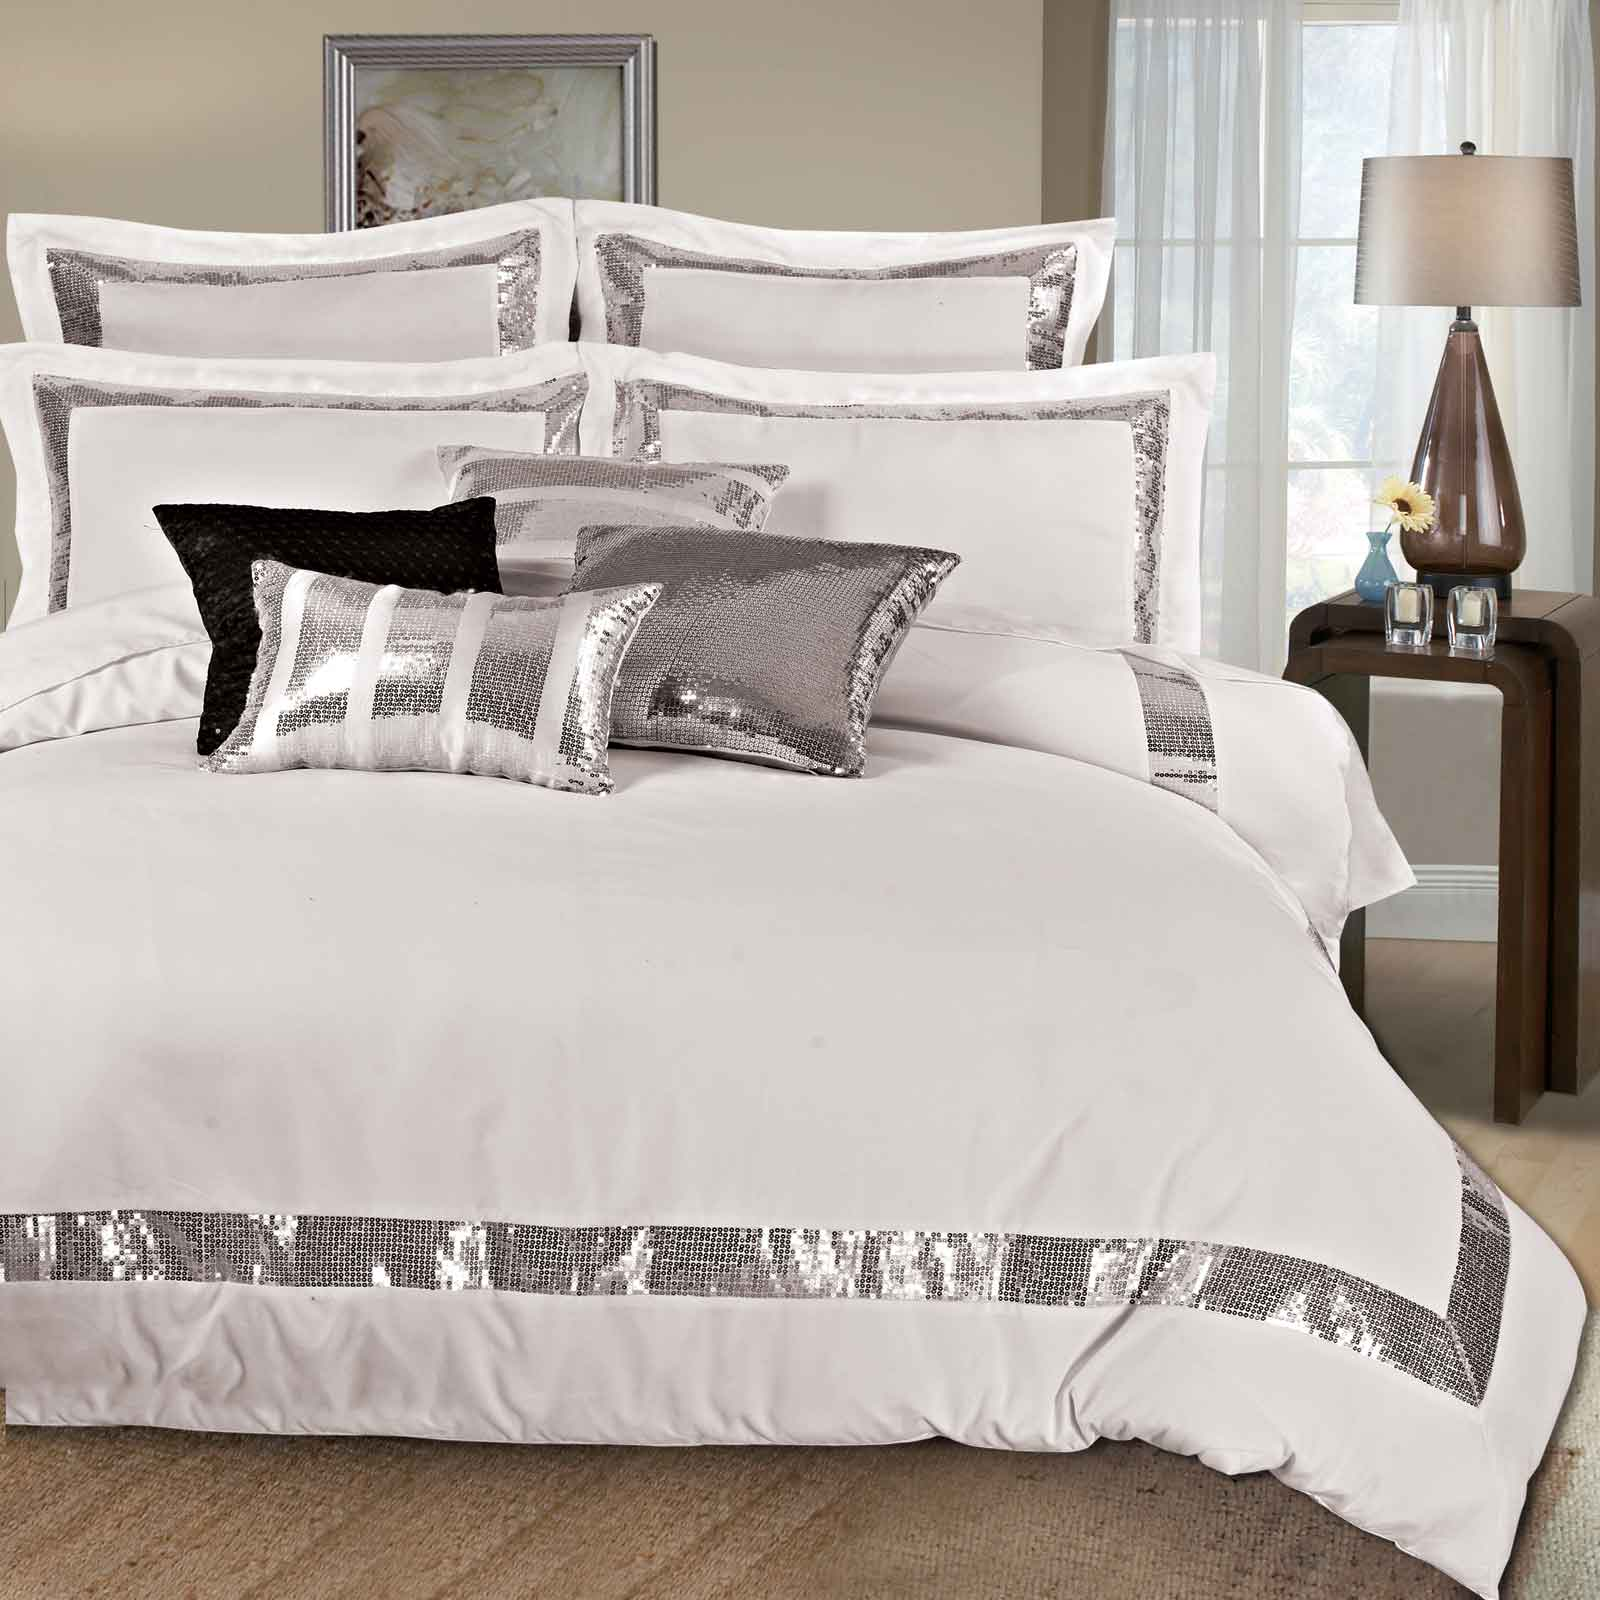 Queen Bed Set Sequins Queen King Size Duvet Quilt Cover Set 3pcs Bed